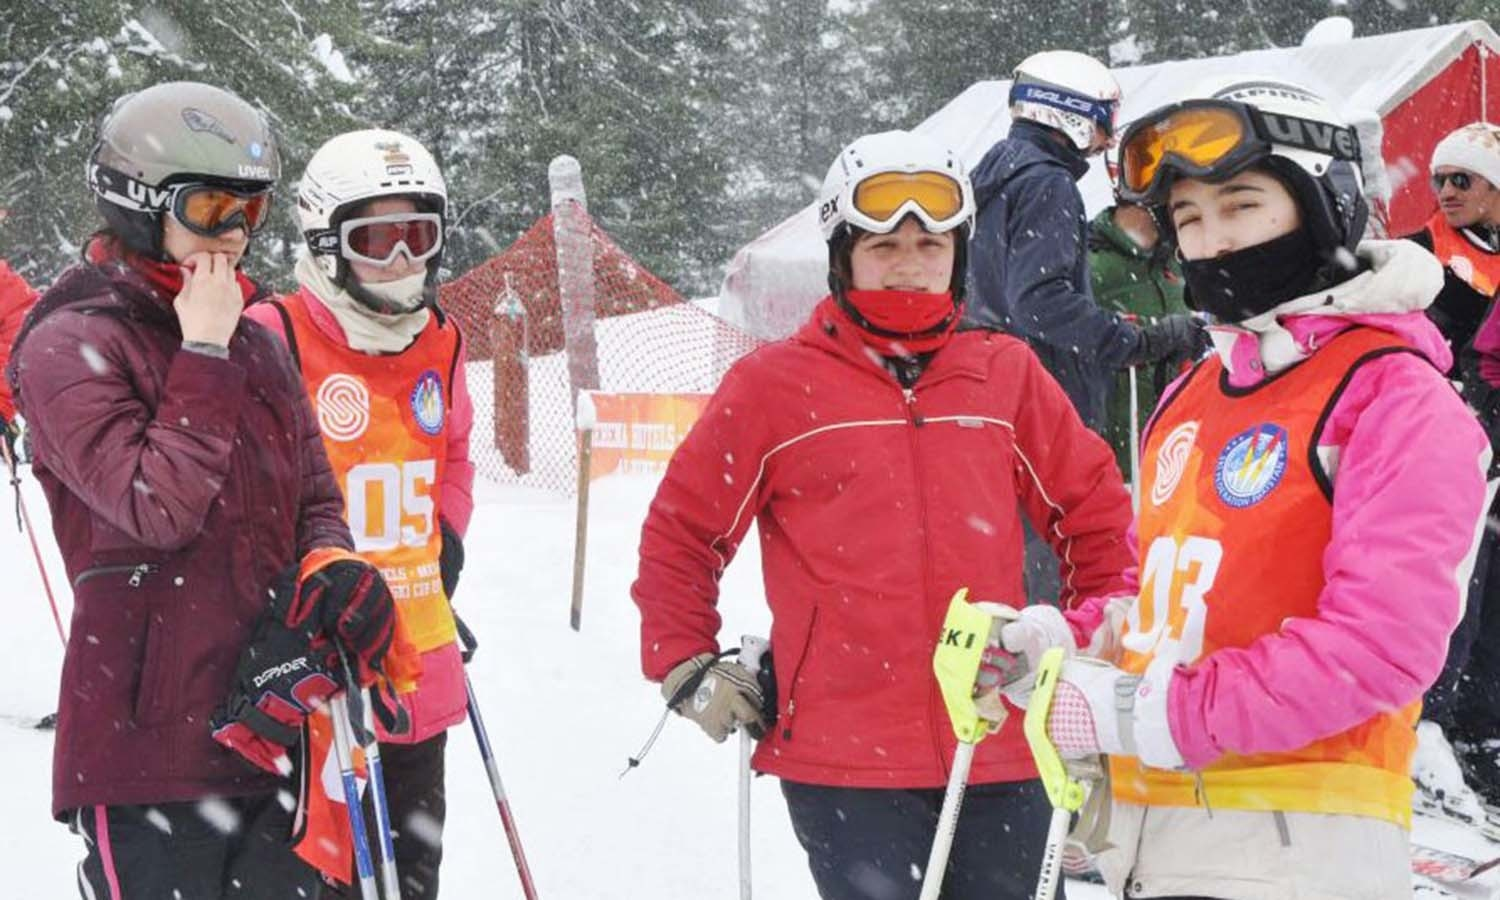 Skiiers get ready to take to the slopes as fresh snow falls. ─ Photo courtesy ISPR